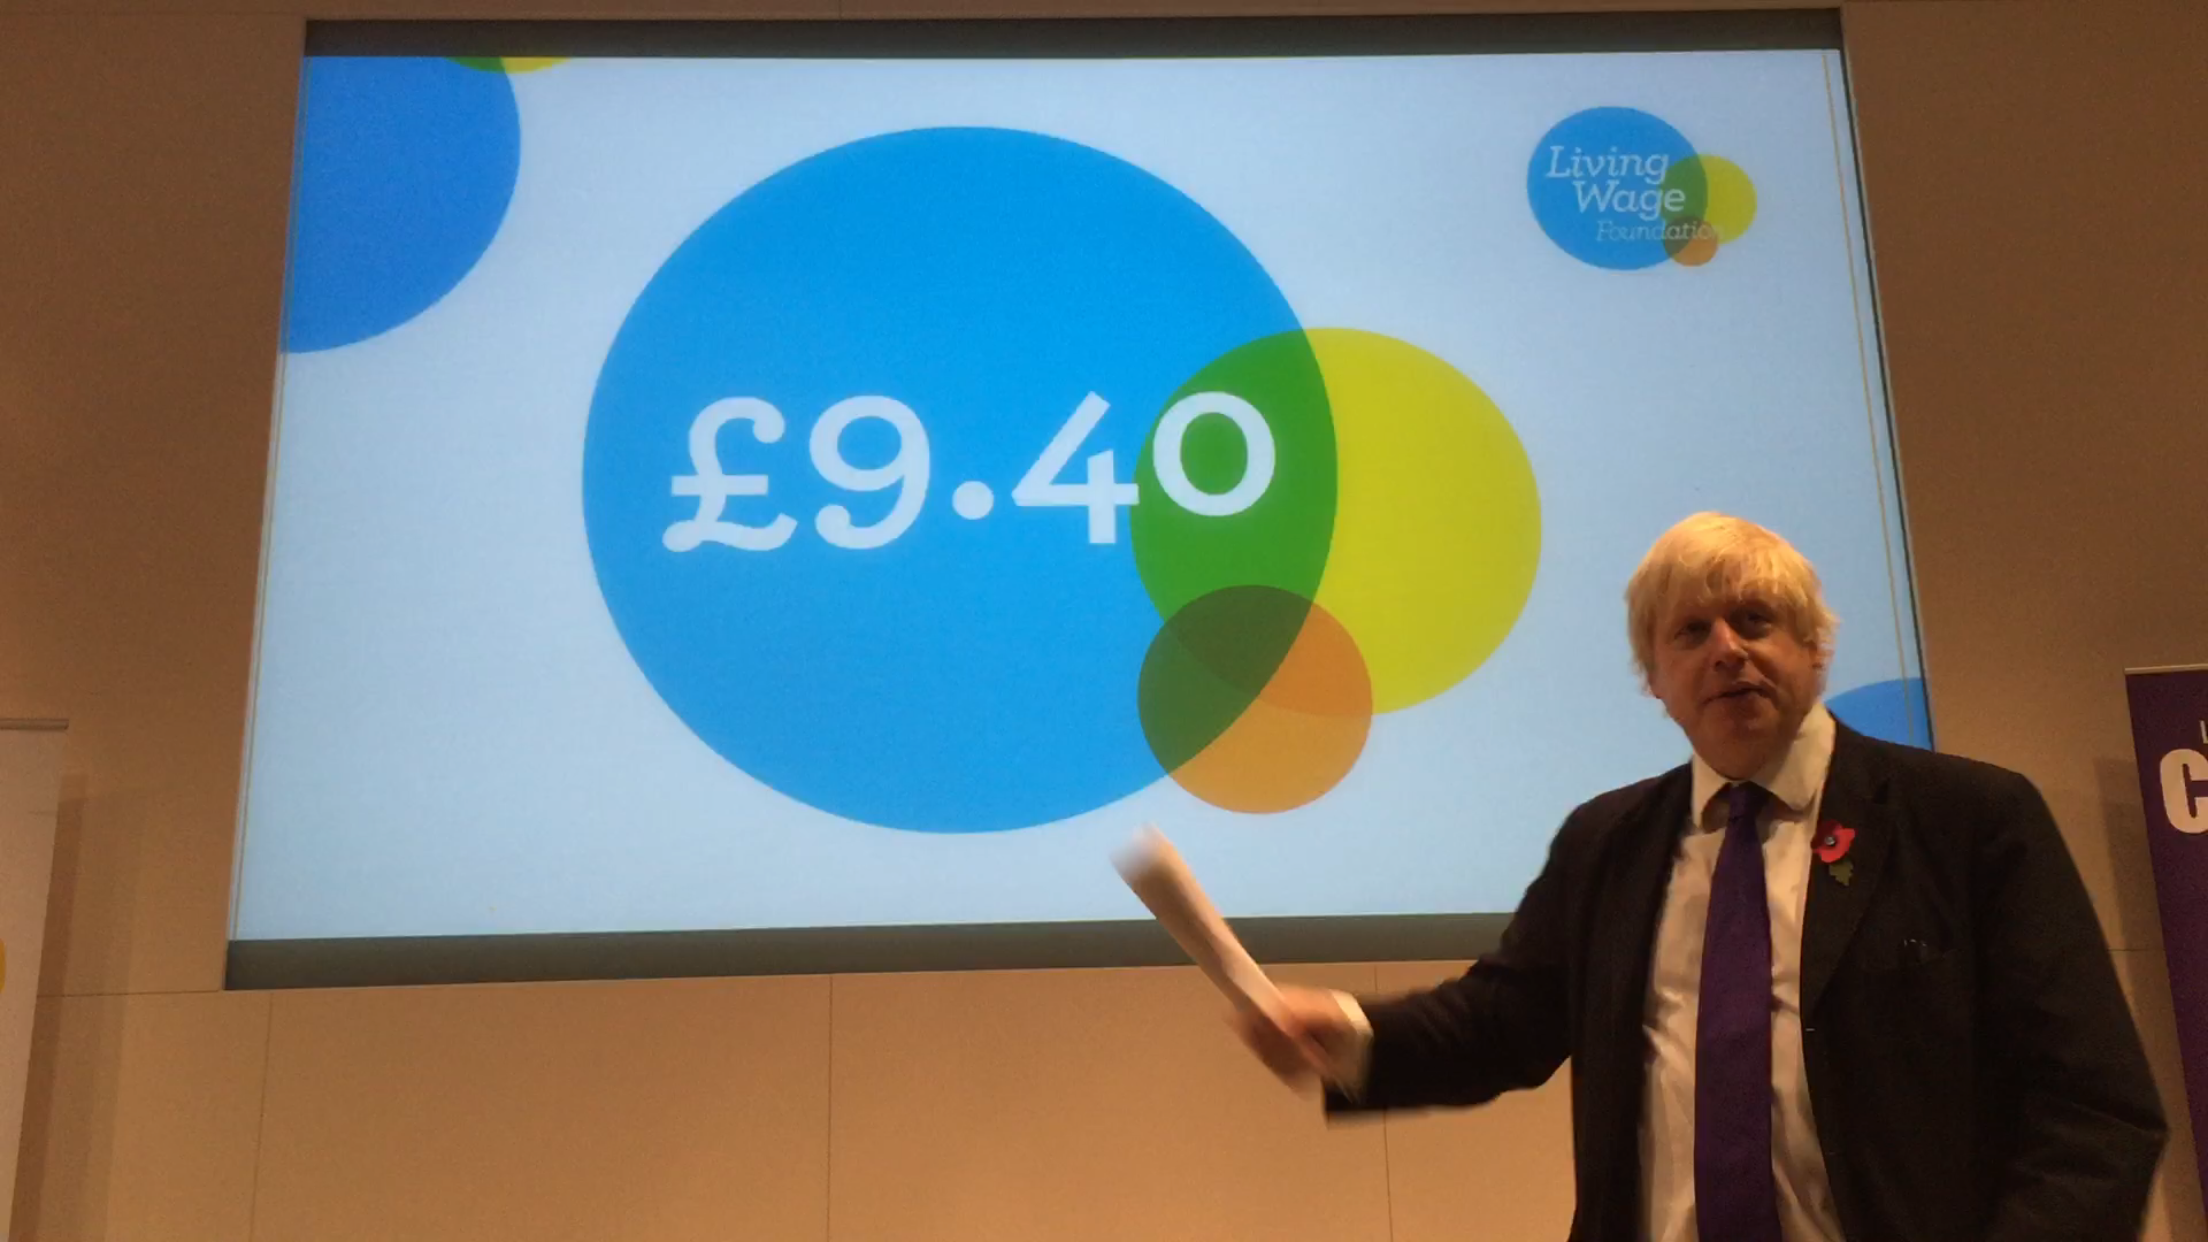 2015-11-02 (Penrose Care) Boris Johnson Living Wage 2016 announces